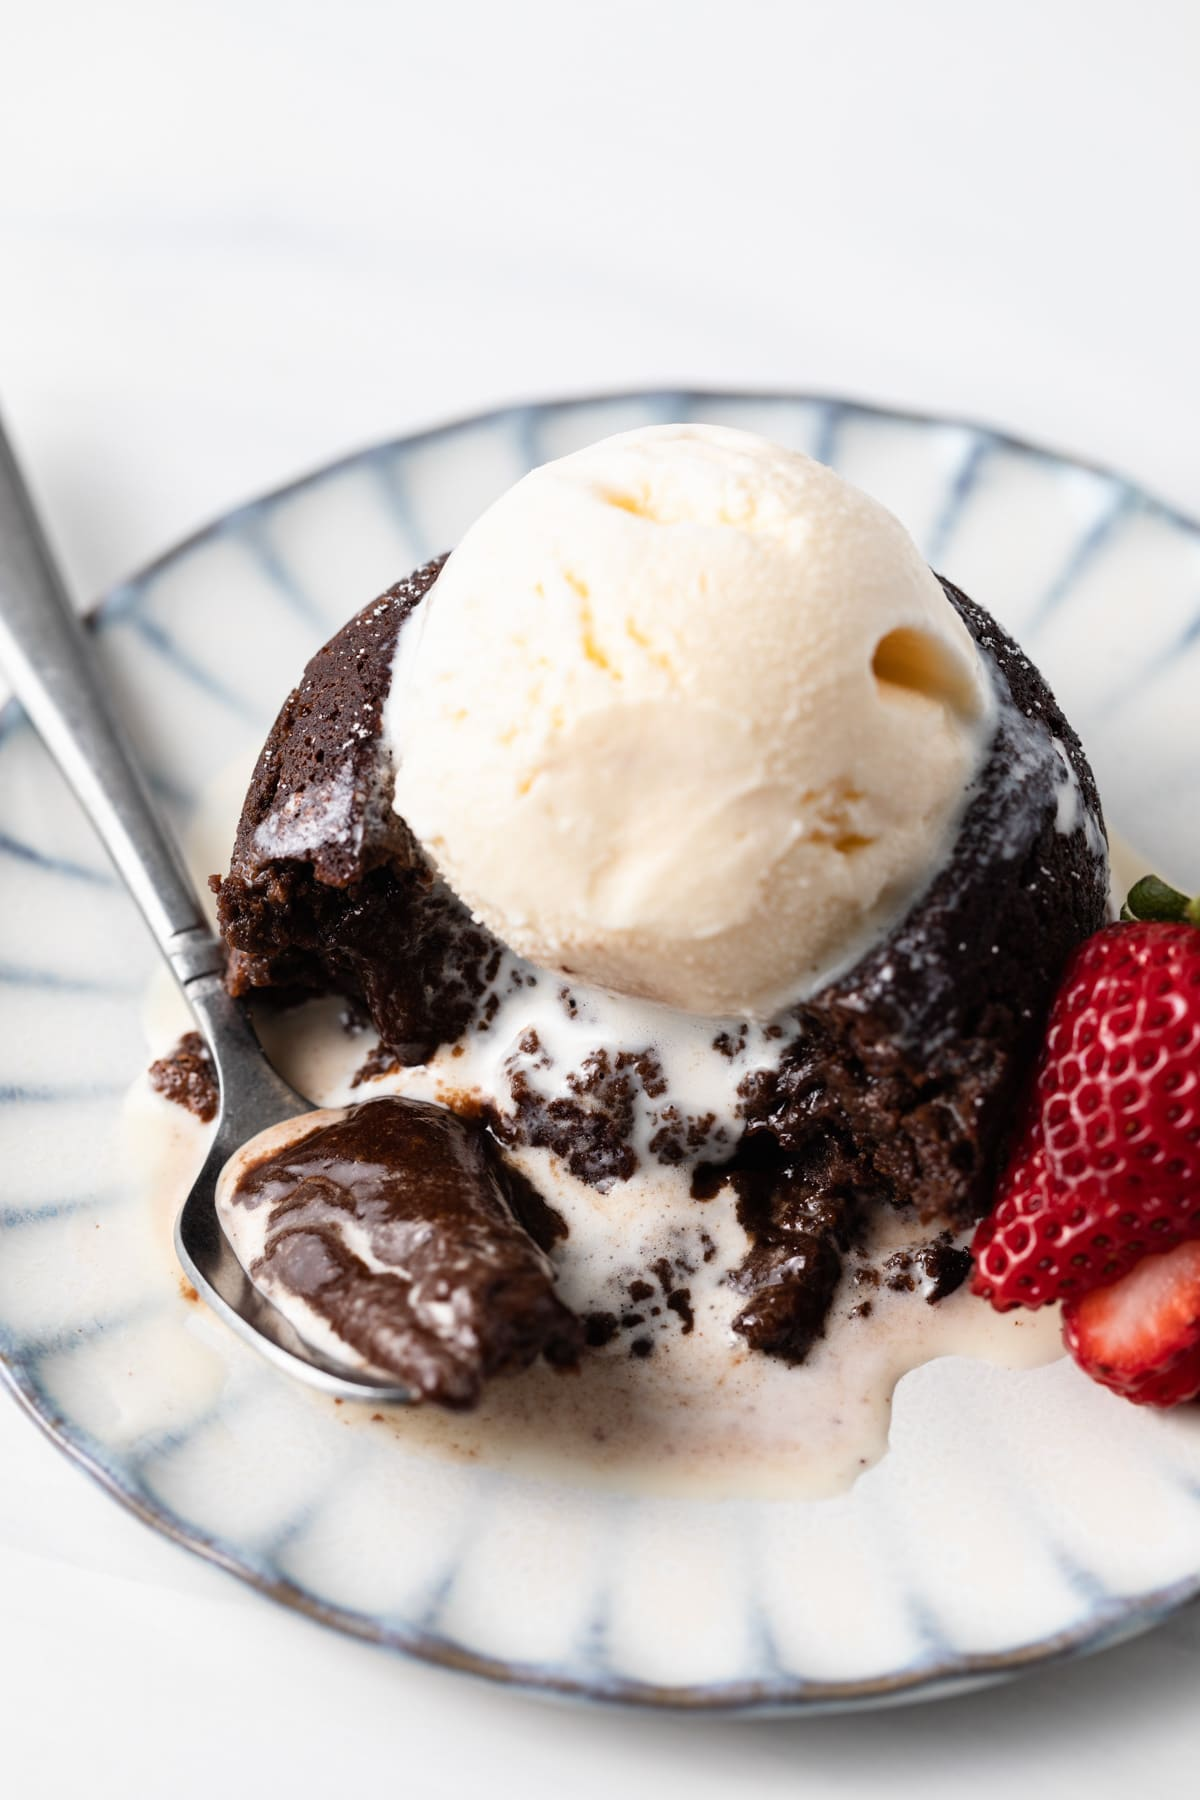 angled view of lava cake topped with ice cream and a spoon taking a bite out